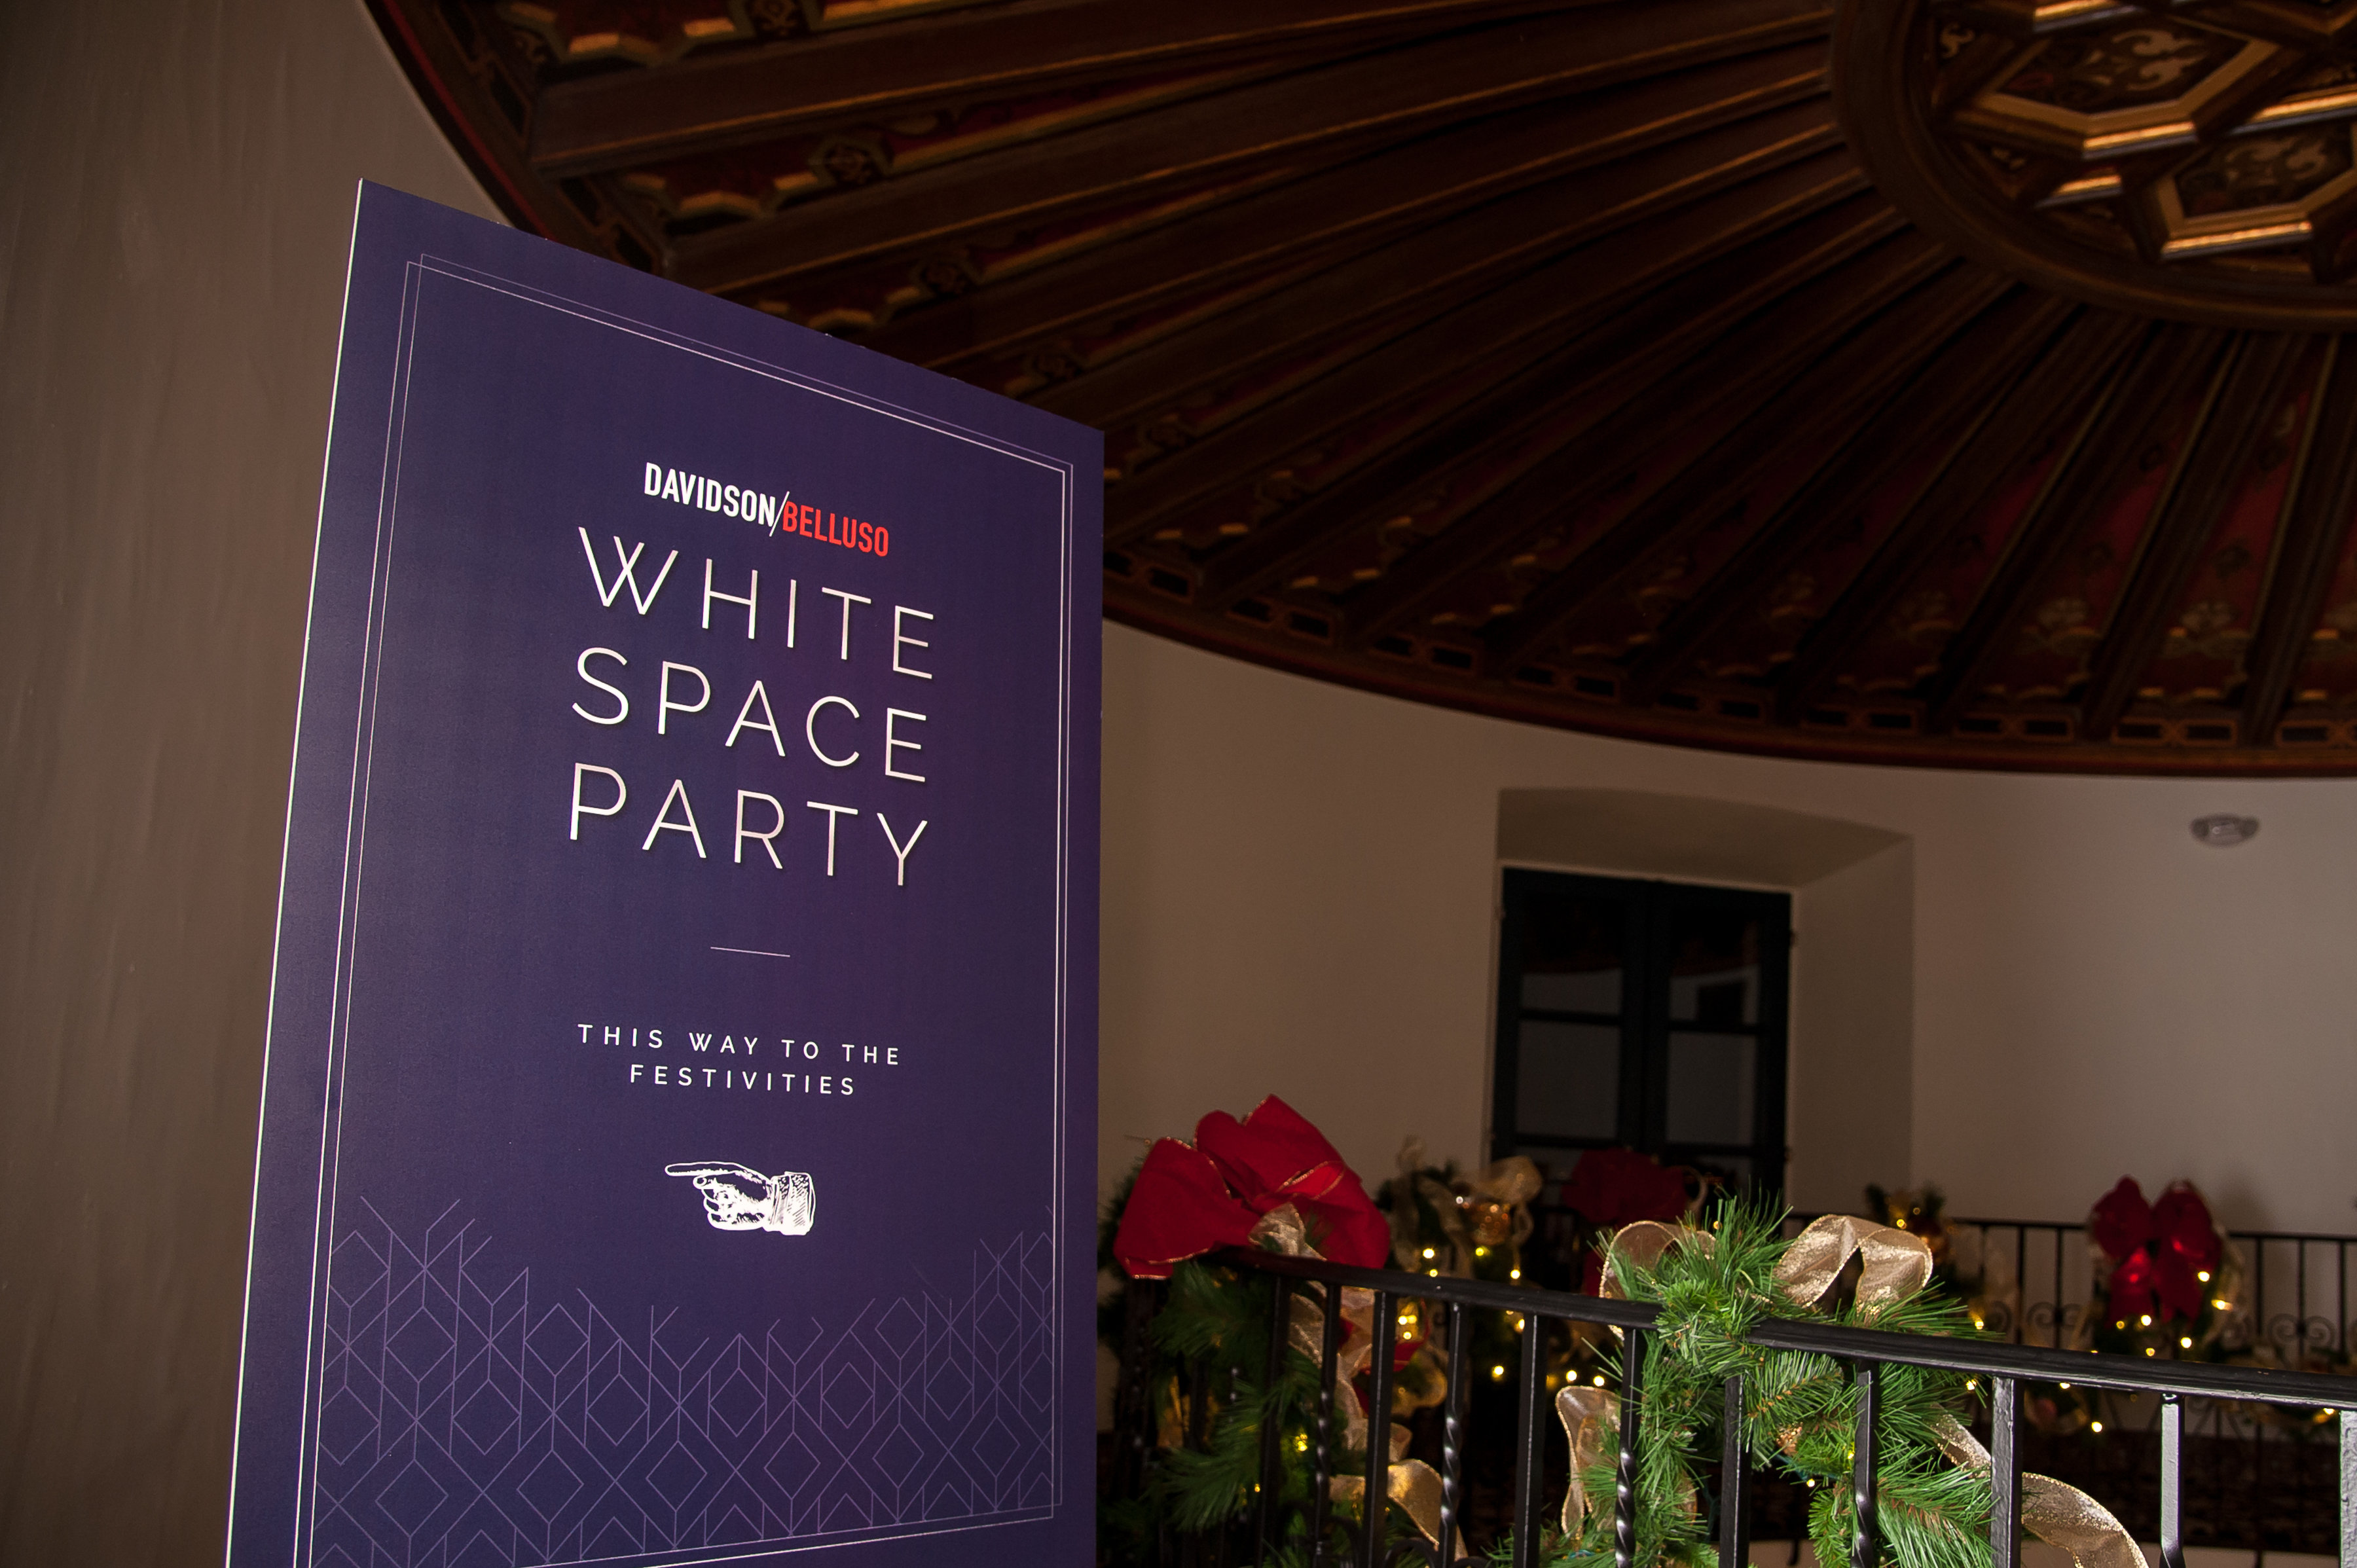 DSC_7990 White Space Party Puts 2017 Into Focus